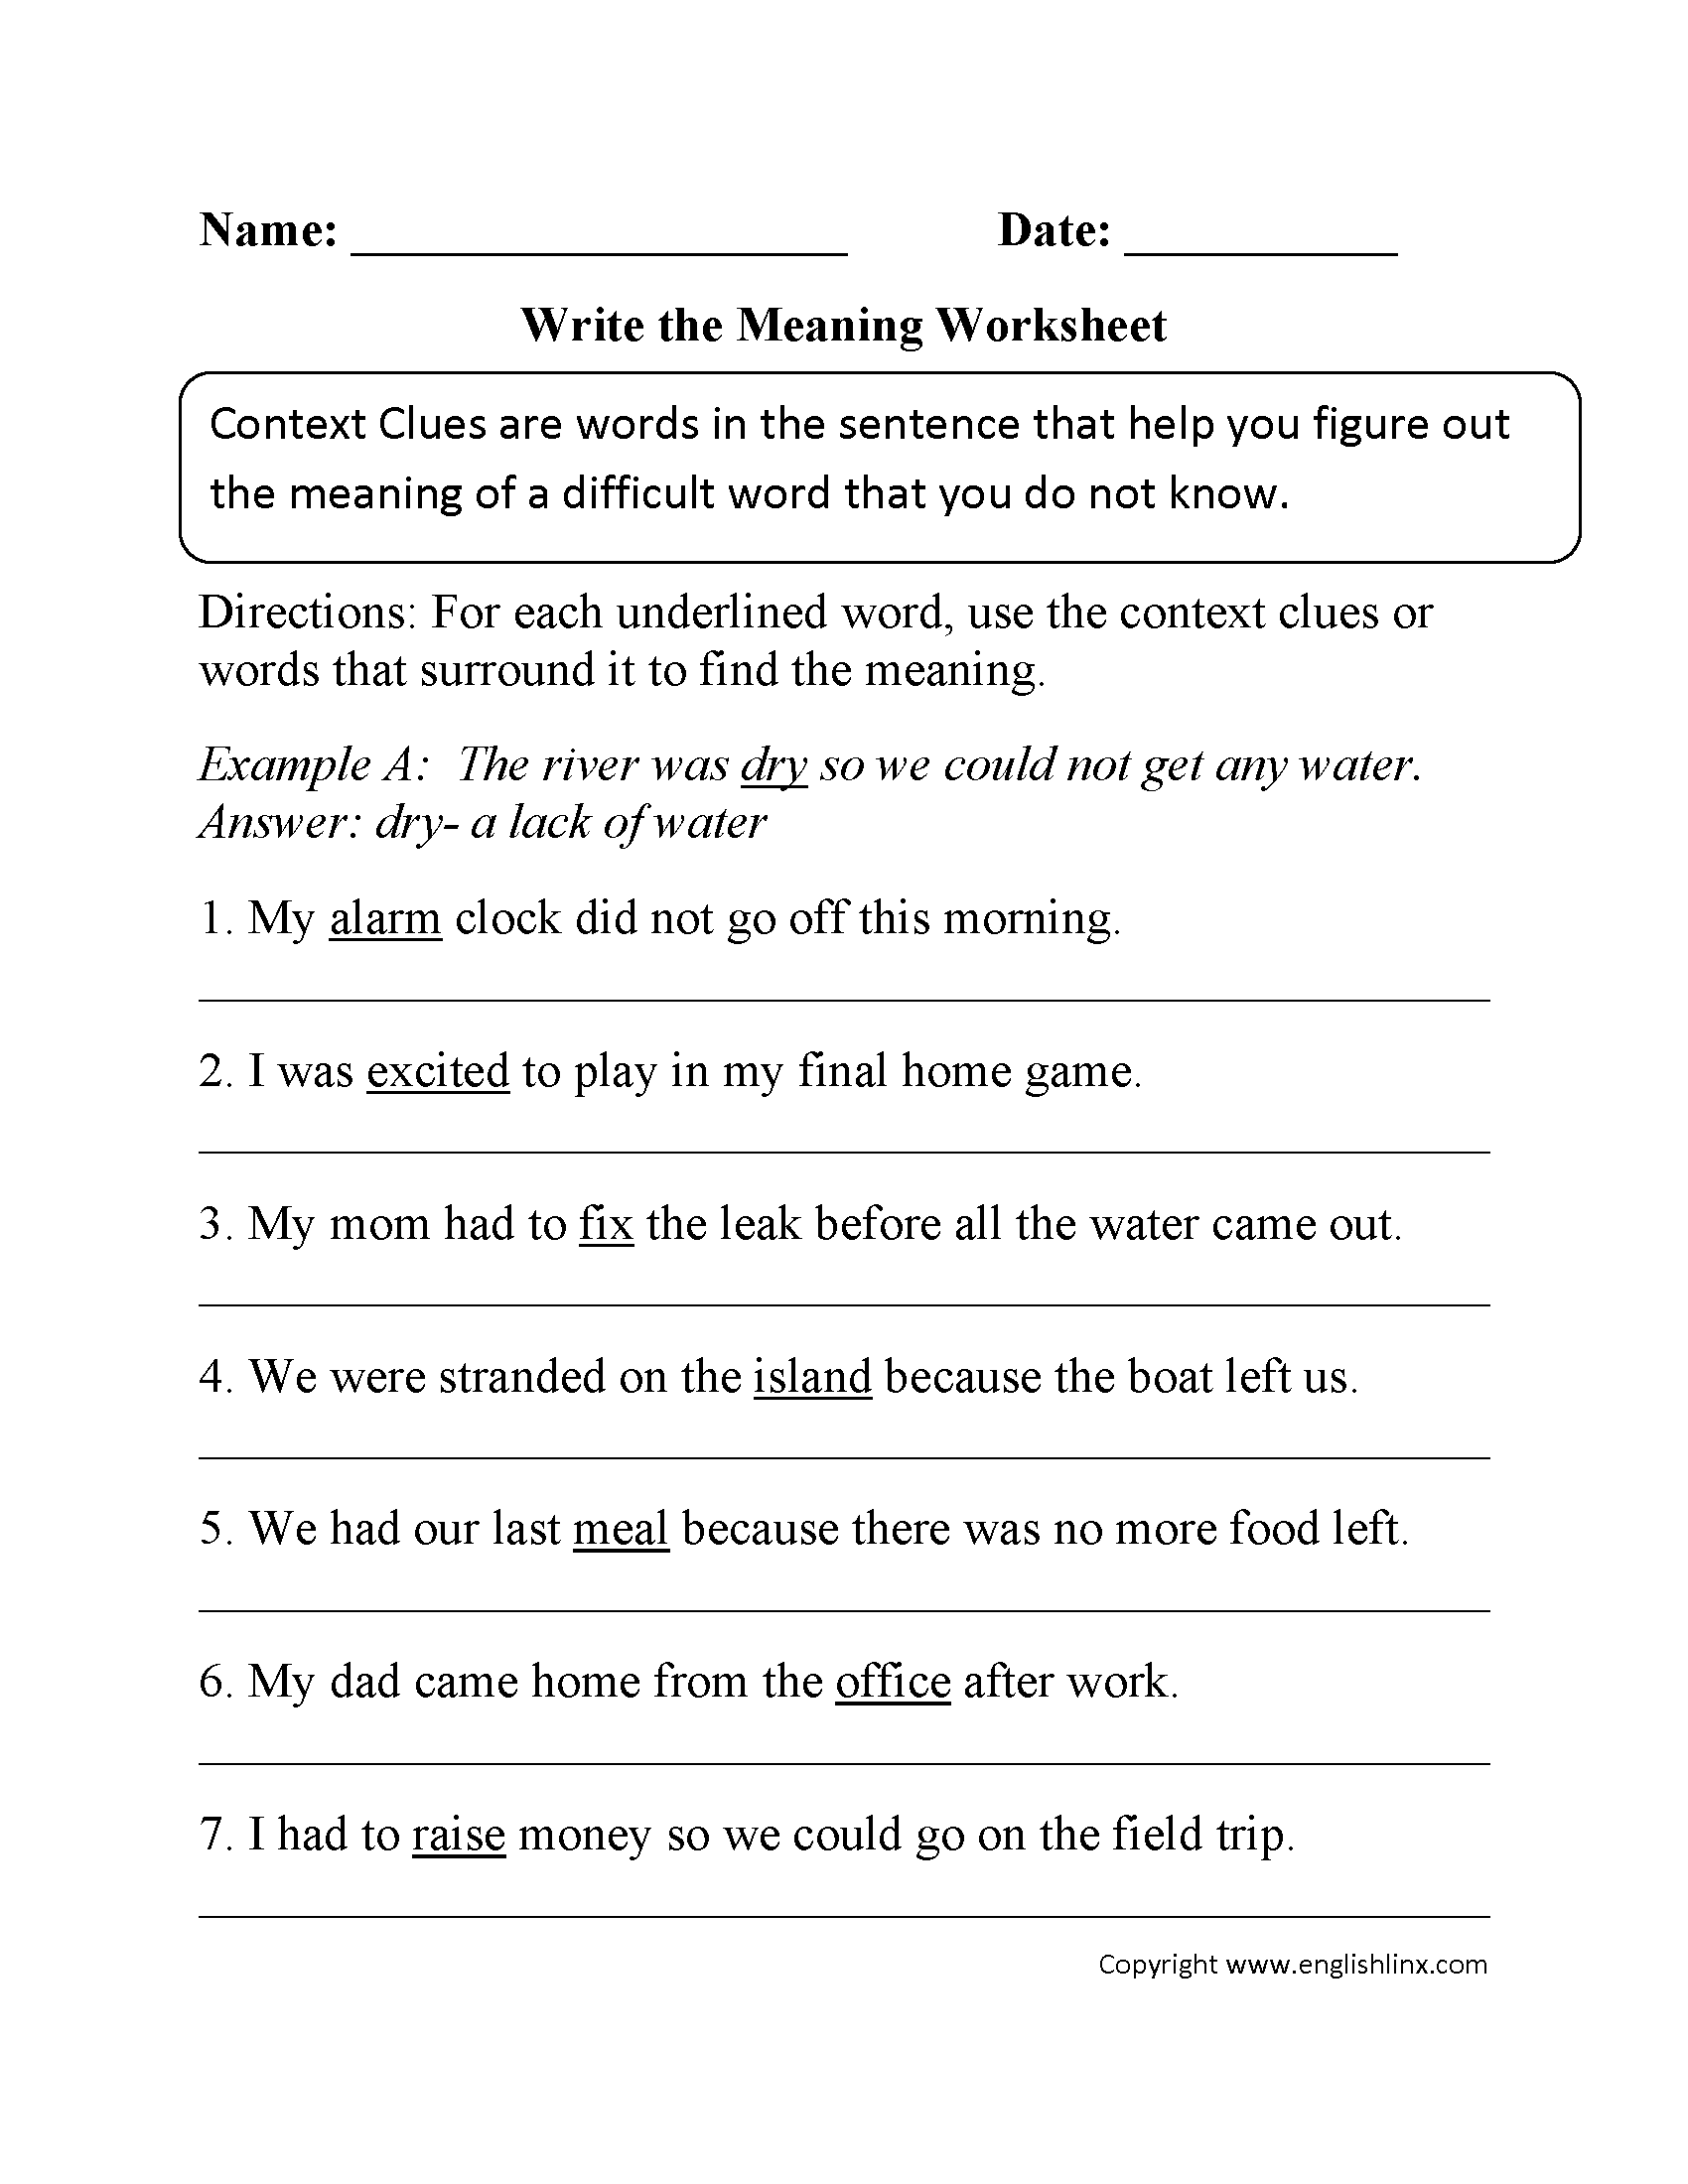 Printables 6th Grade Vocabulary Worksheets reading worksheets context clues worksheet